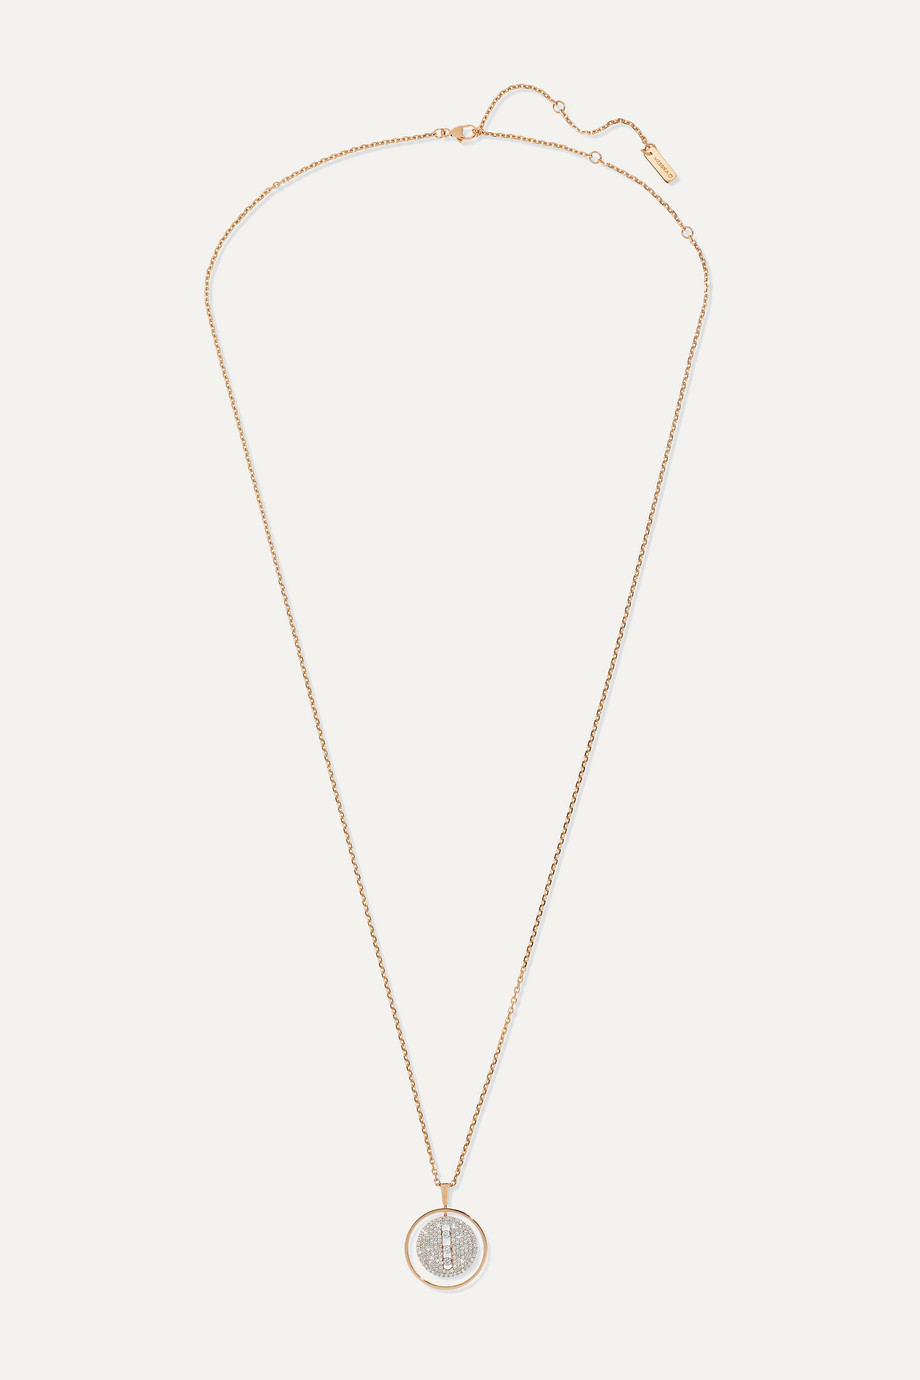 MESSIKA Lucky Move 18-karat rose gold diamond necklace